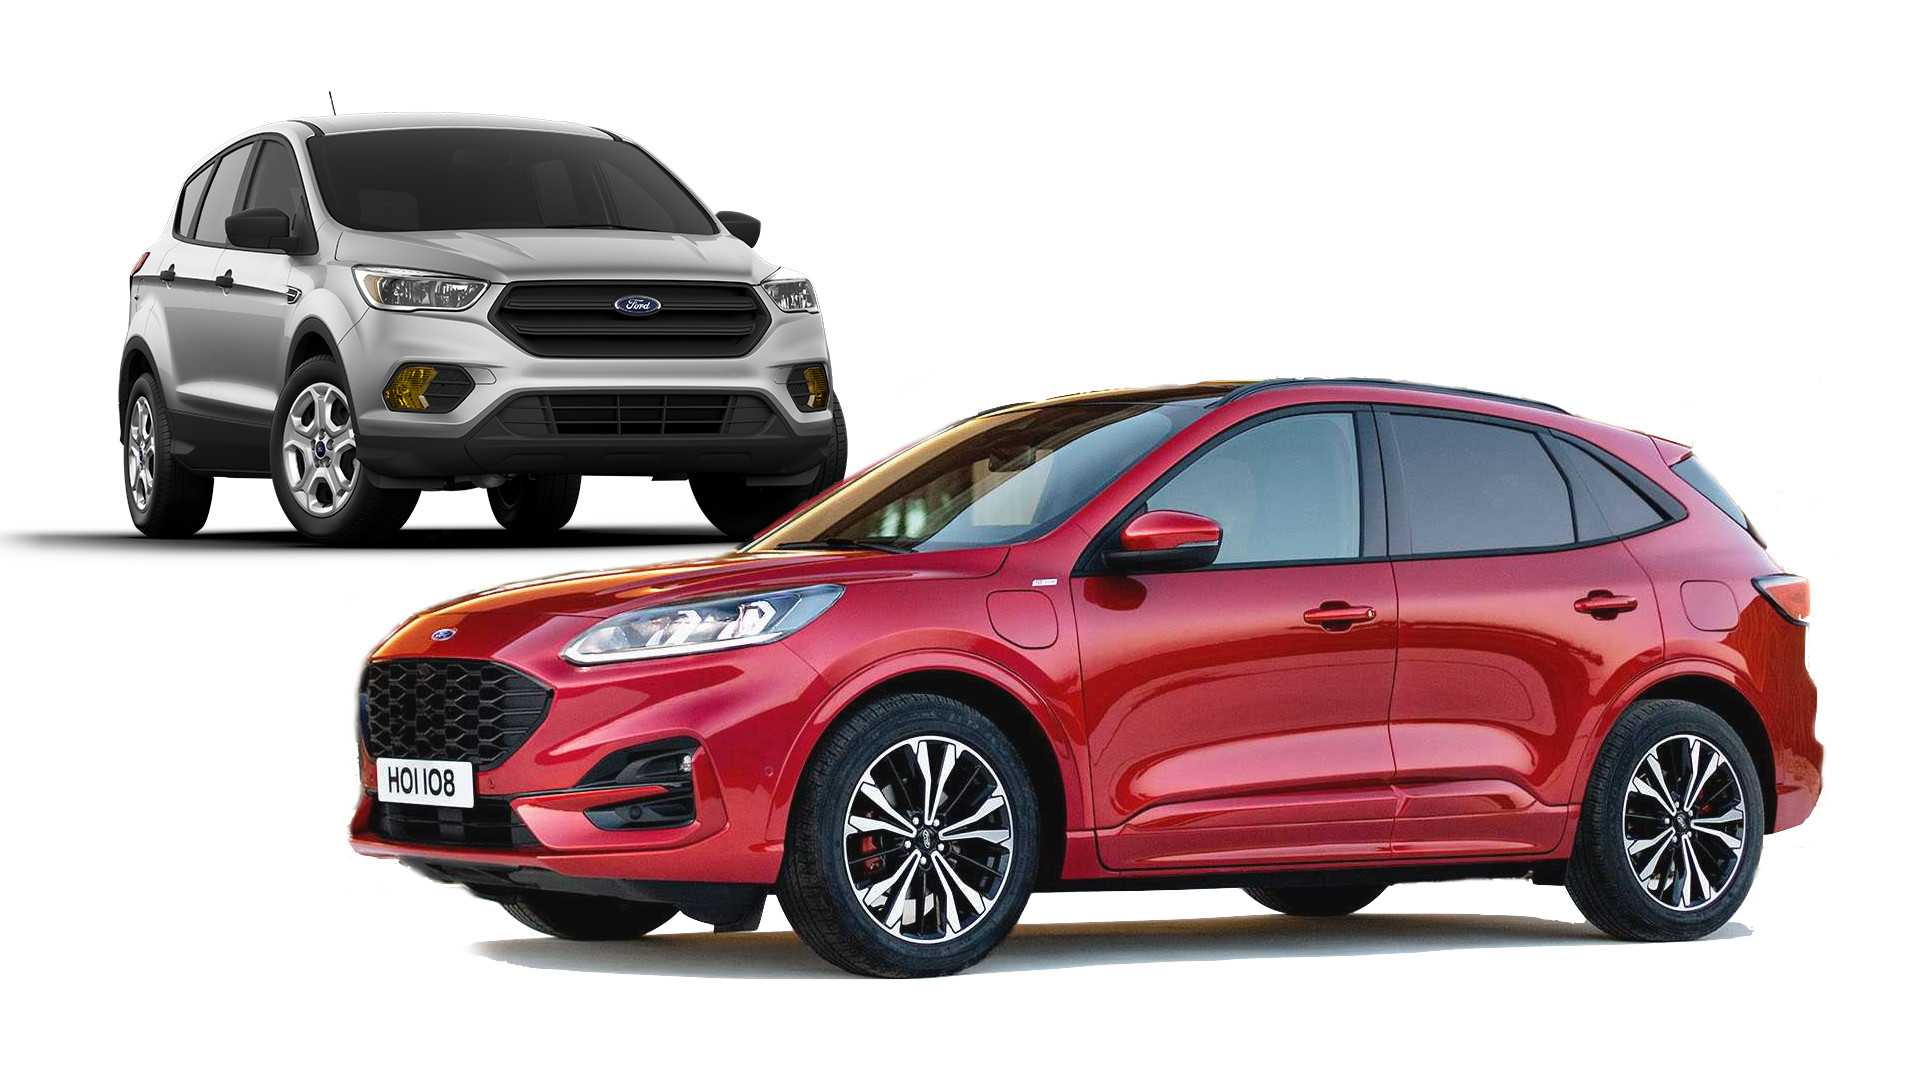 63 Concept of Ford Kuga 2020 Uk Images by Ford Kuga 2020 Uk